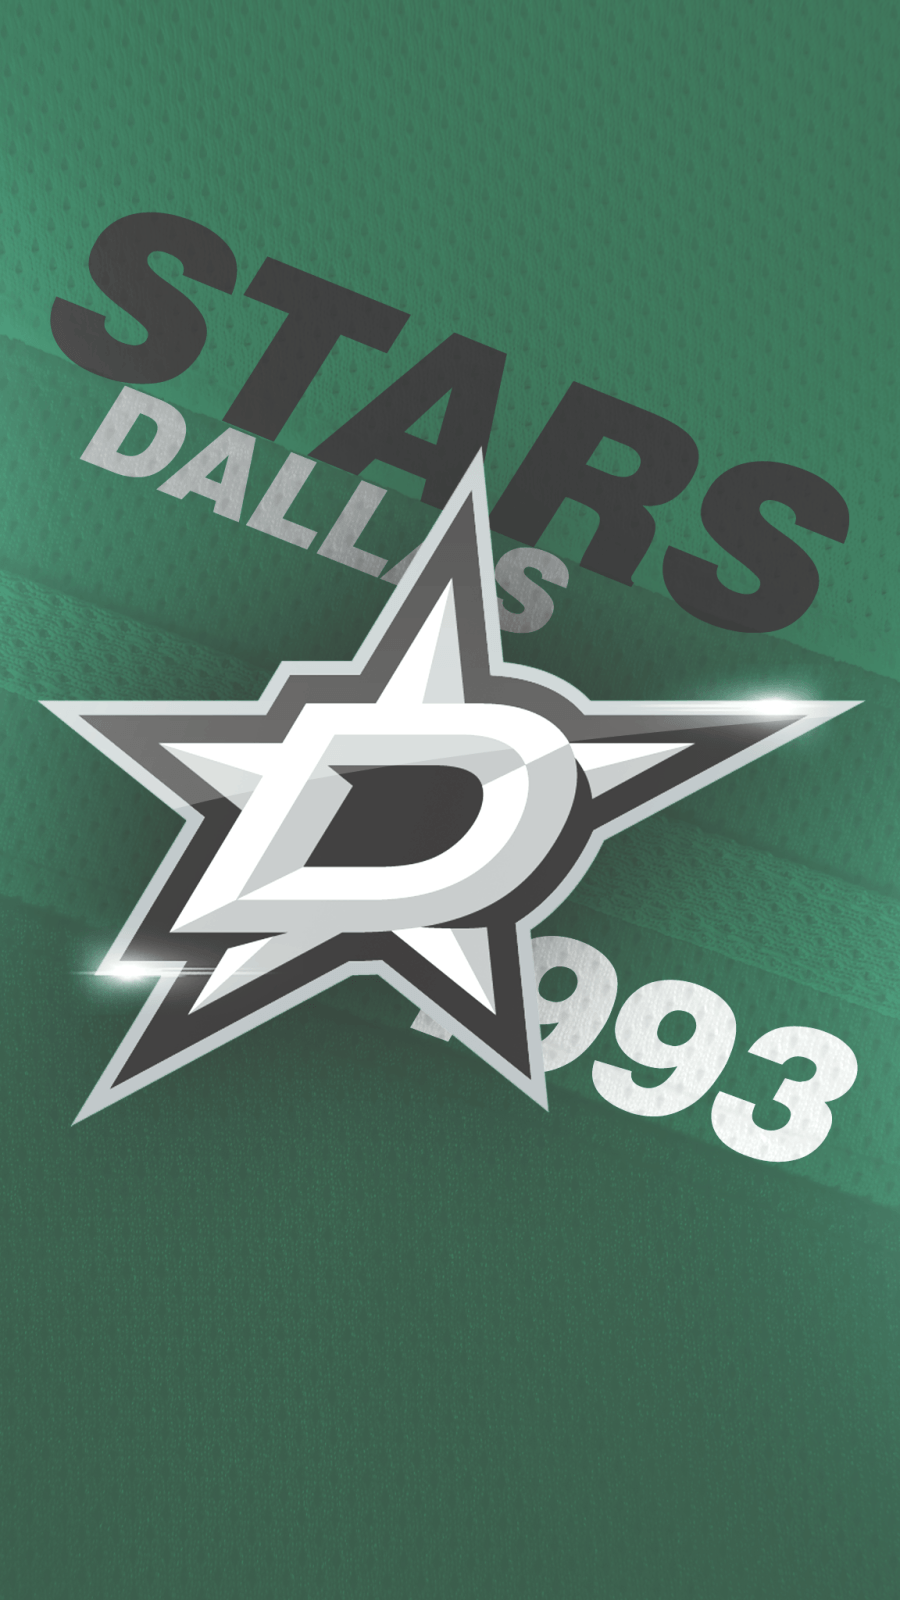 NHL Phone Wallpapers | 2BCSports - Gaming. Sports. NHL 17 forums.